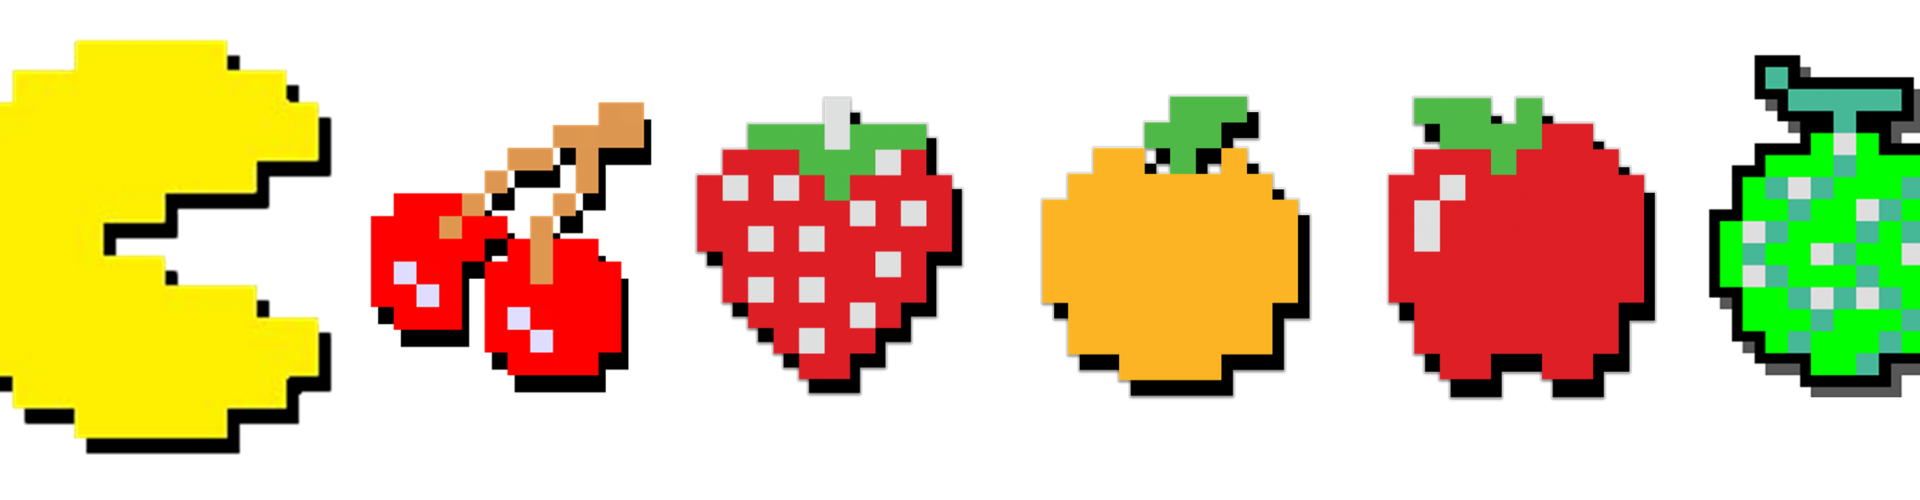 Pacman fruit png. And pac man lucky